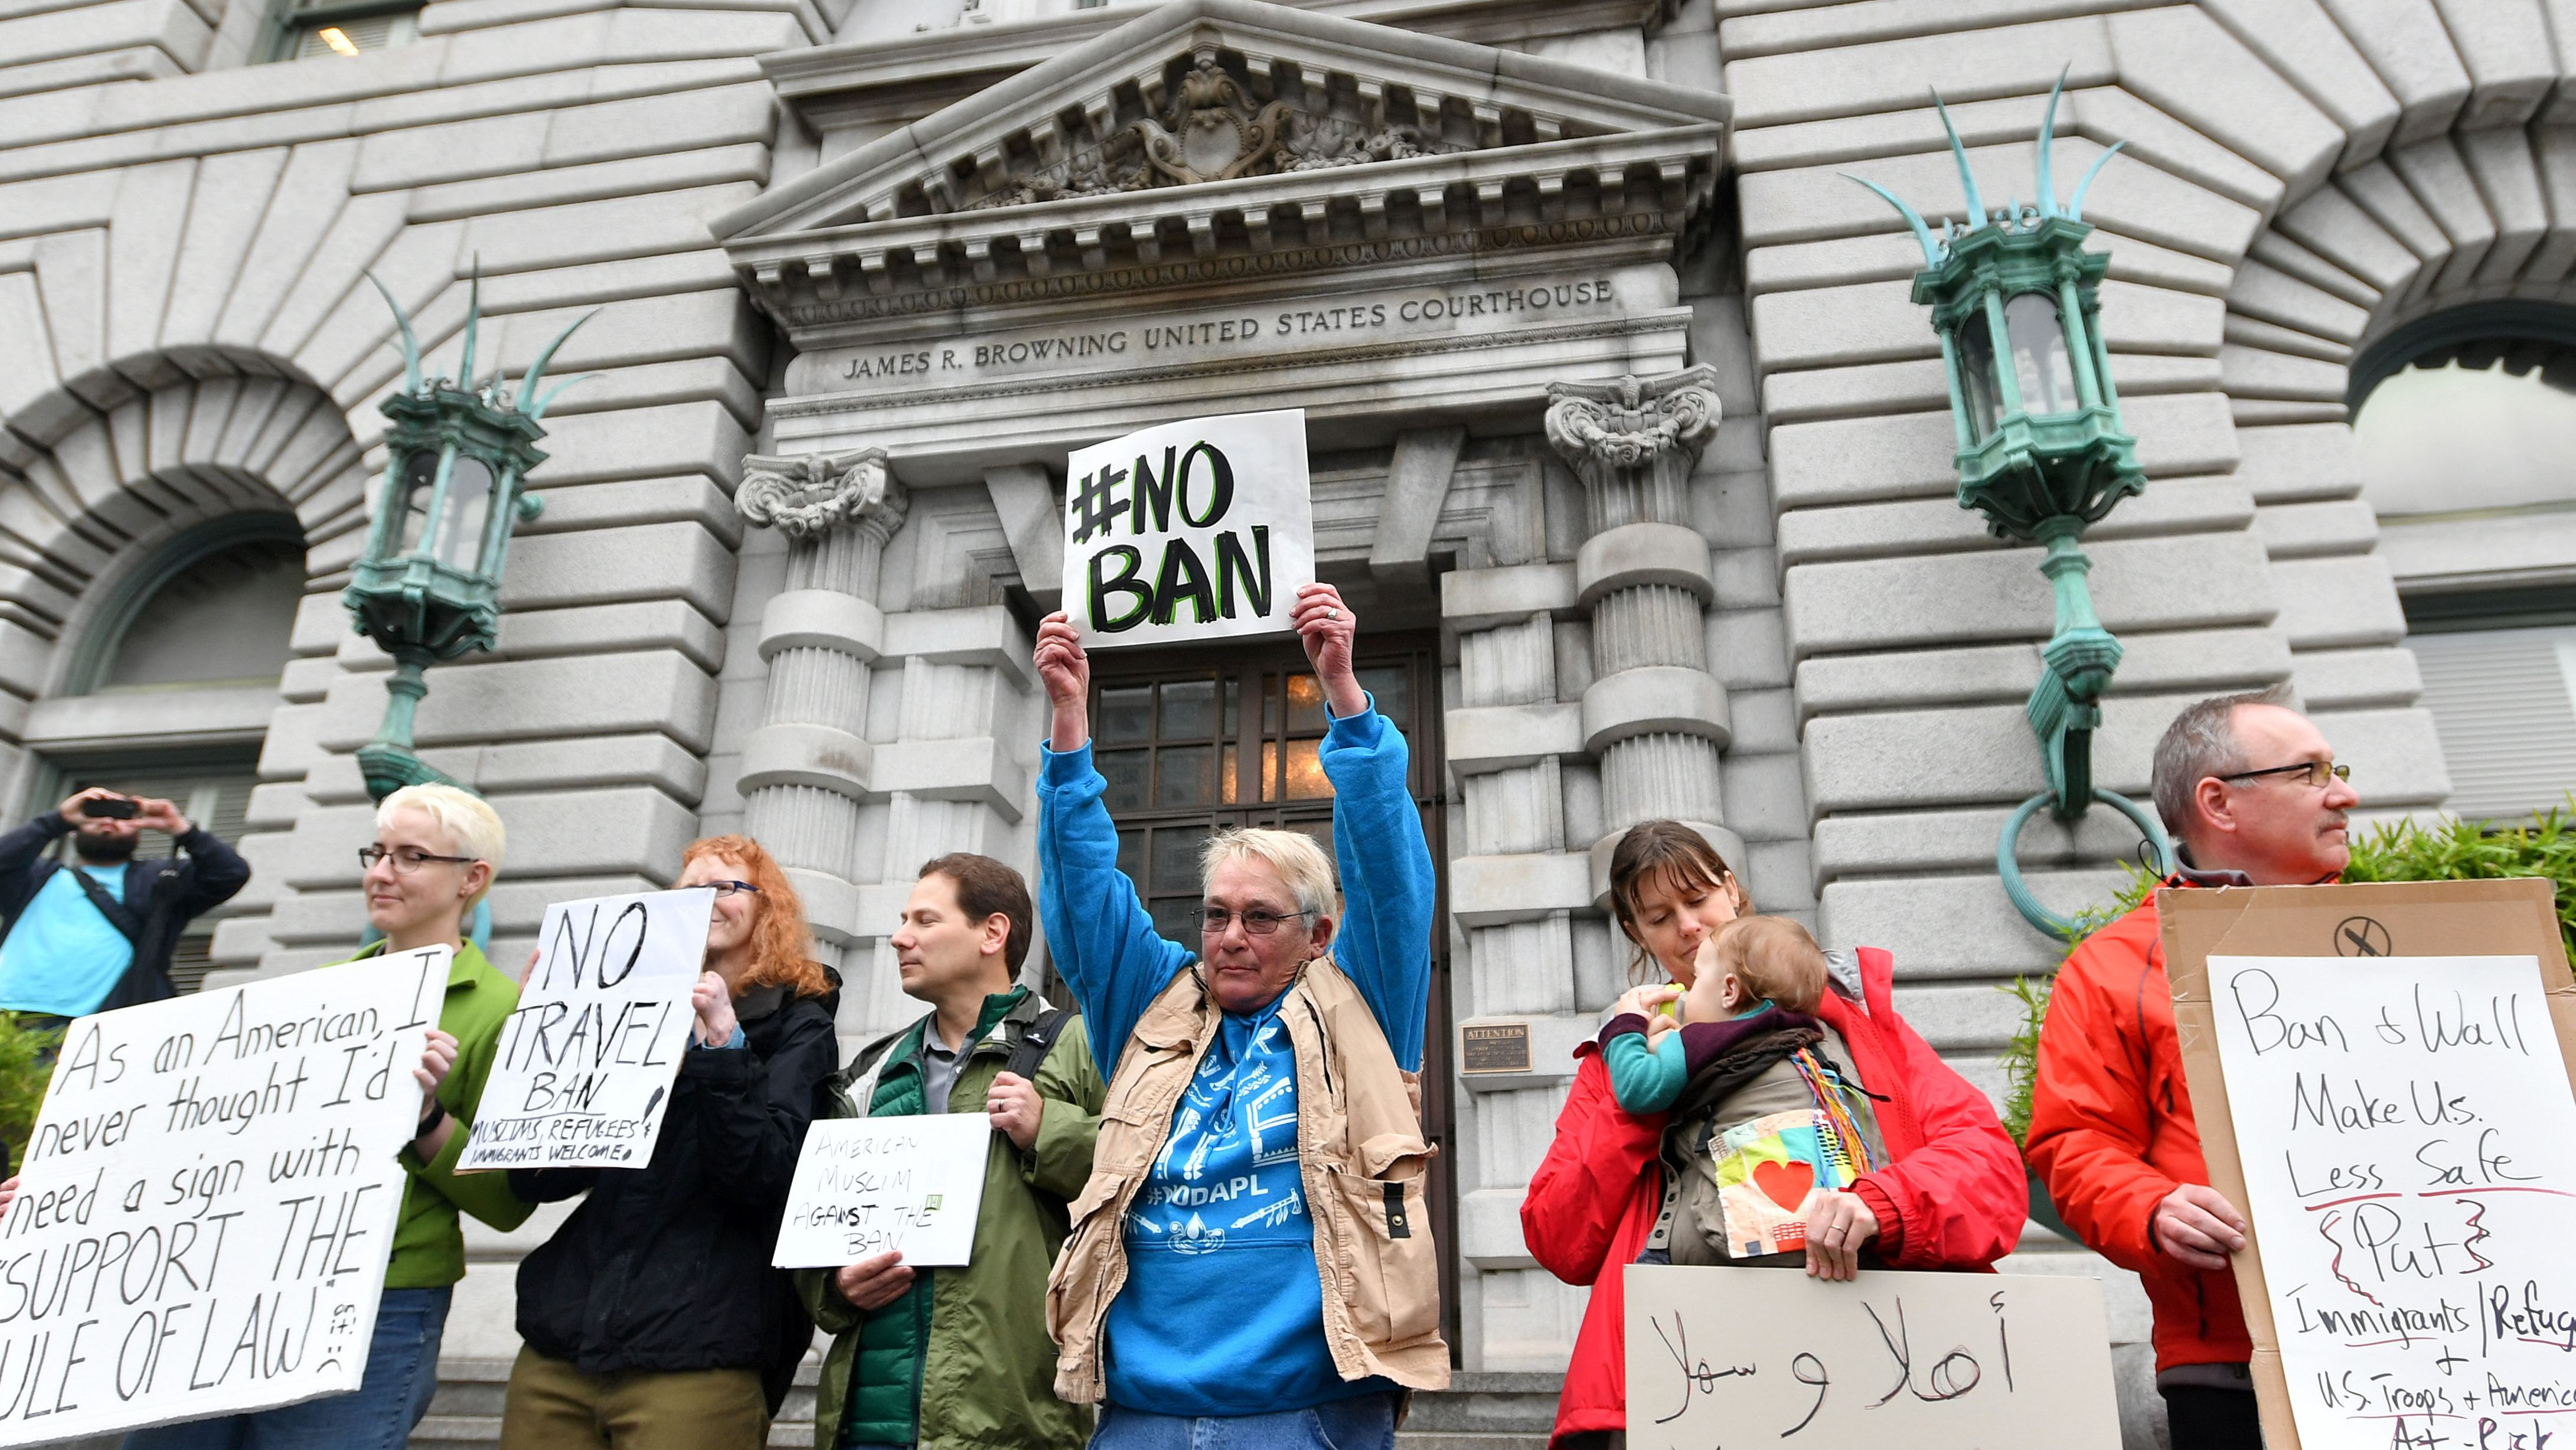 Protesters stand in front of the United States Court of Appeals for the Ninth Circuit in San Francisco, California on February 7, 2017. (Getty)